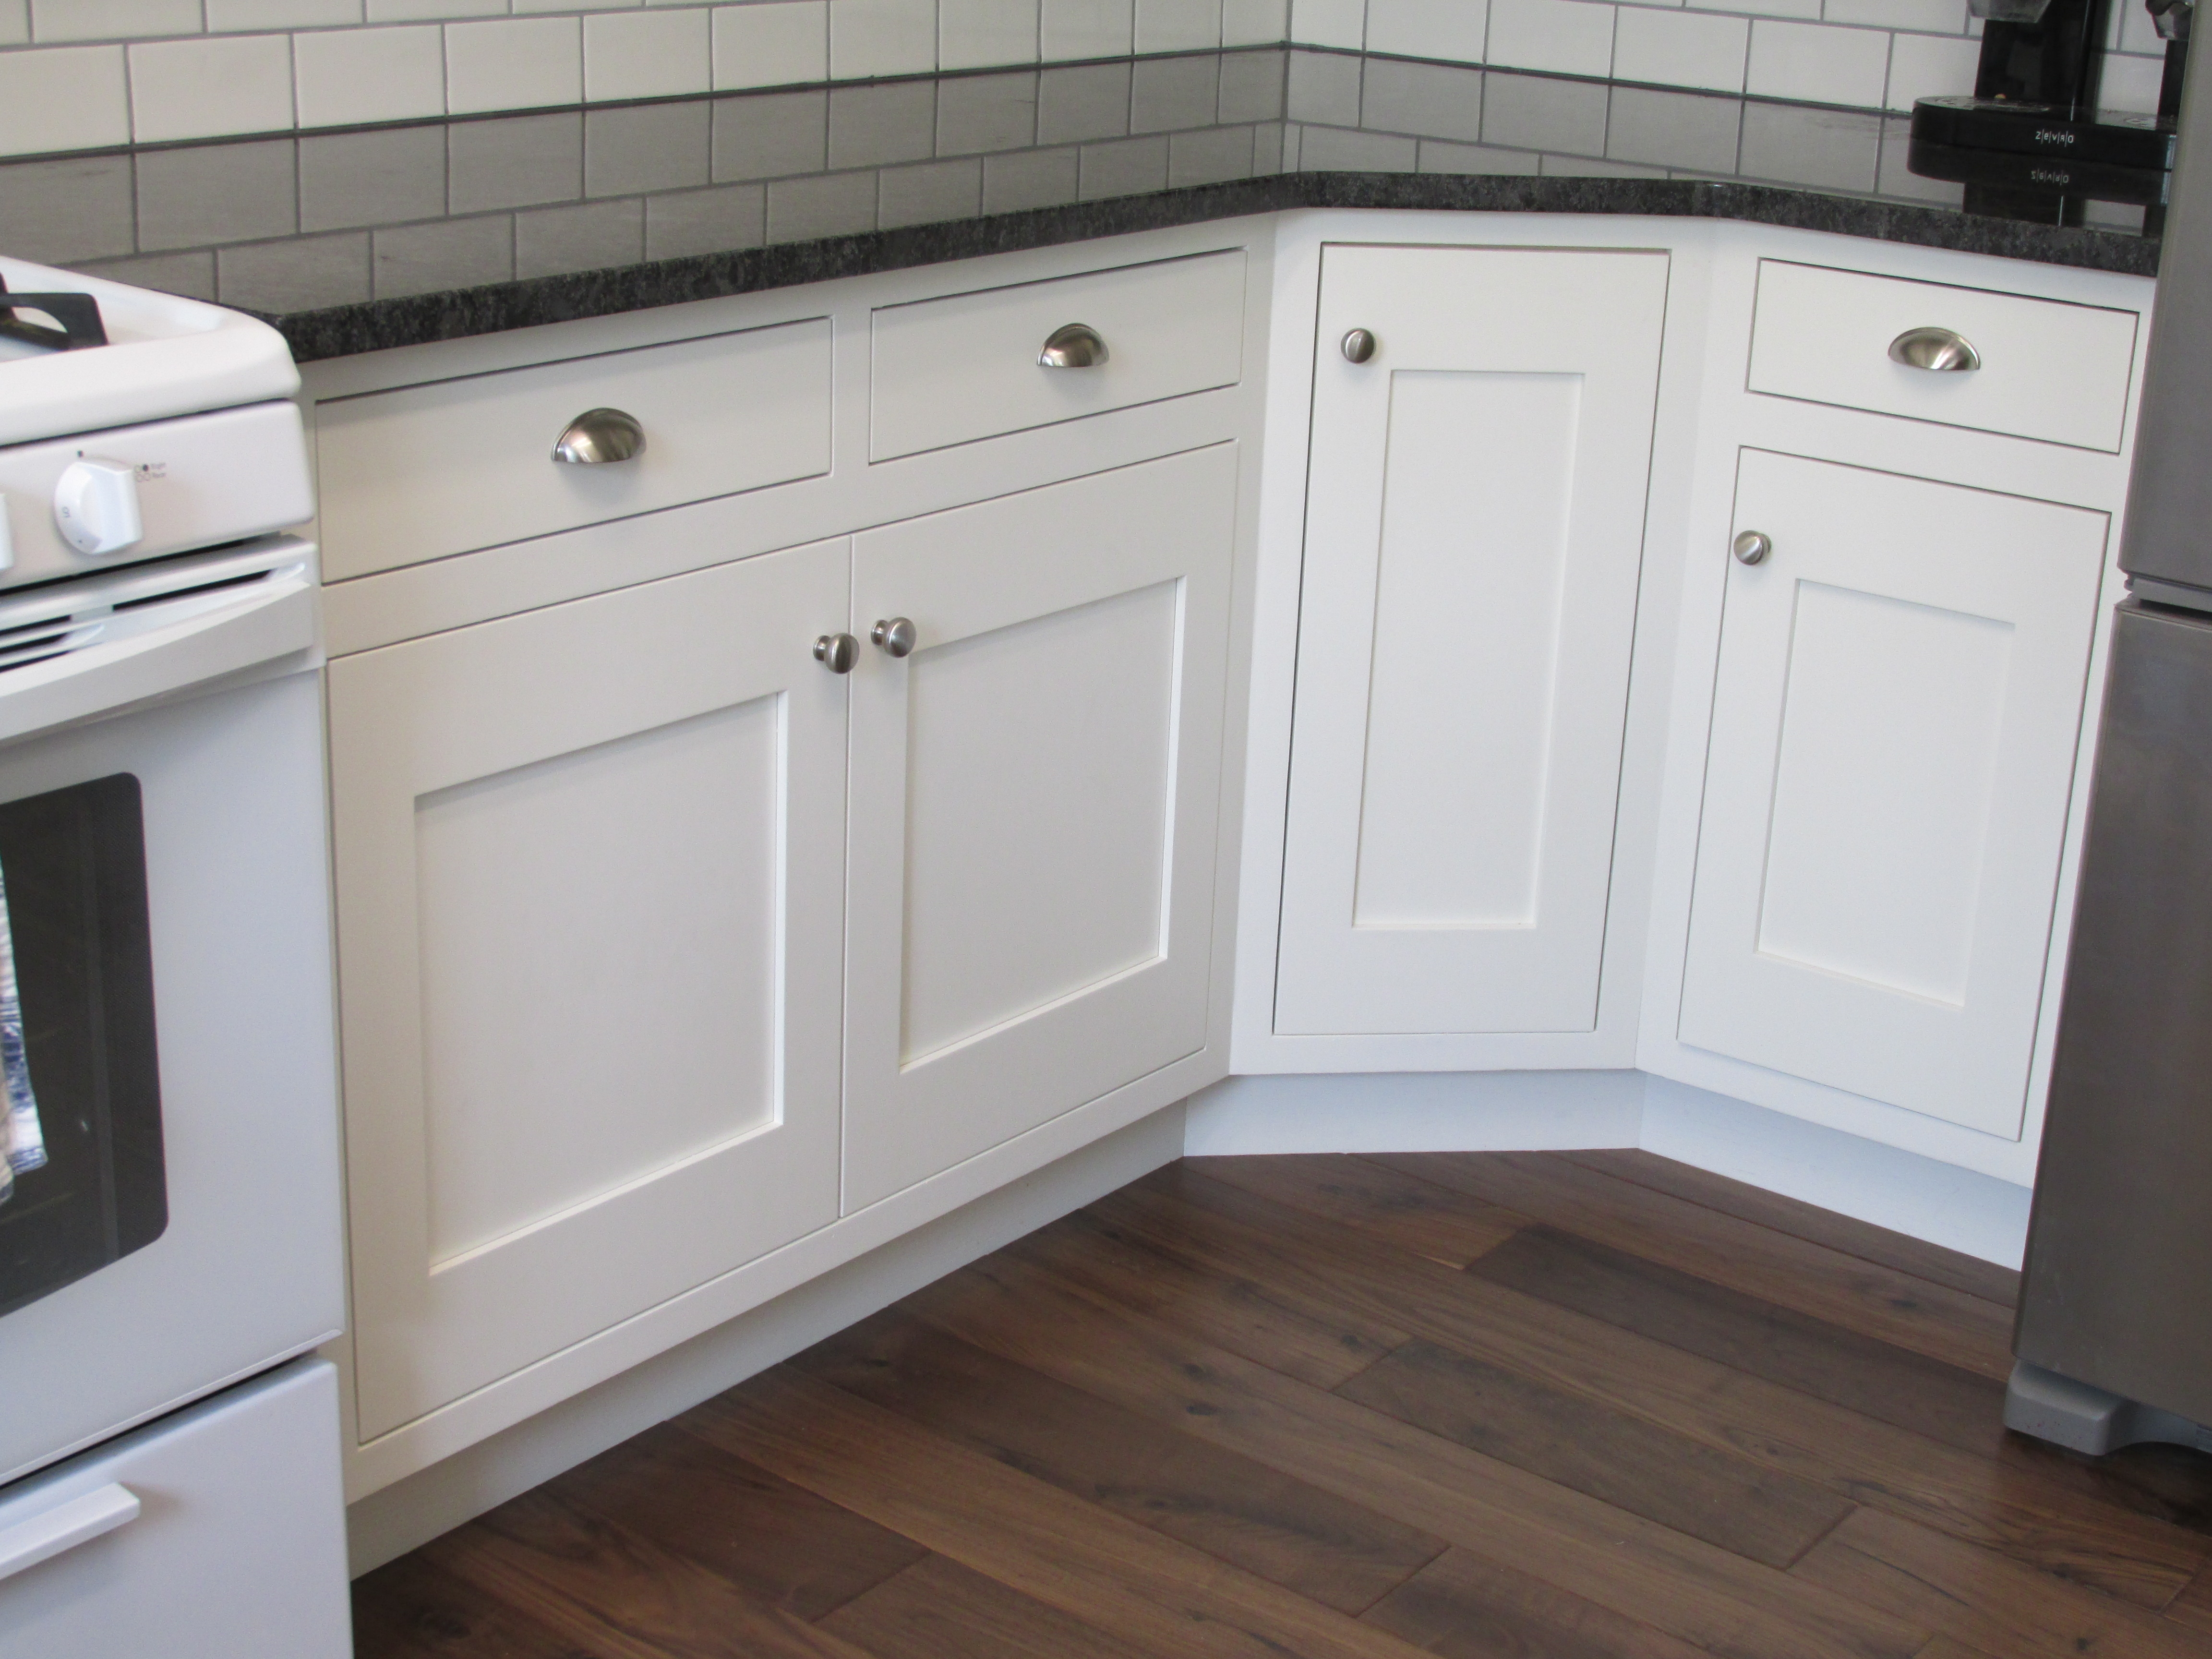 Kitchen Cabinets Overlay Or Inset